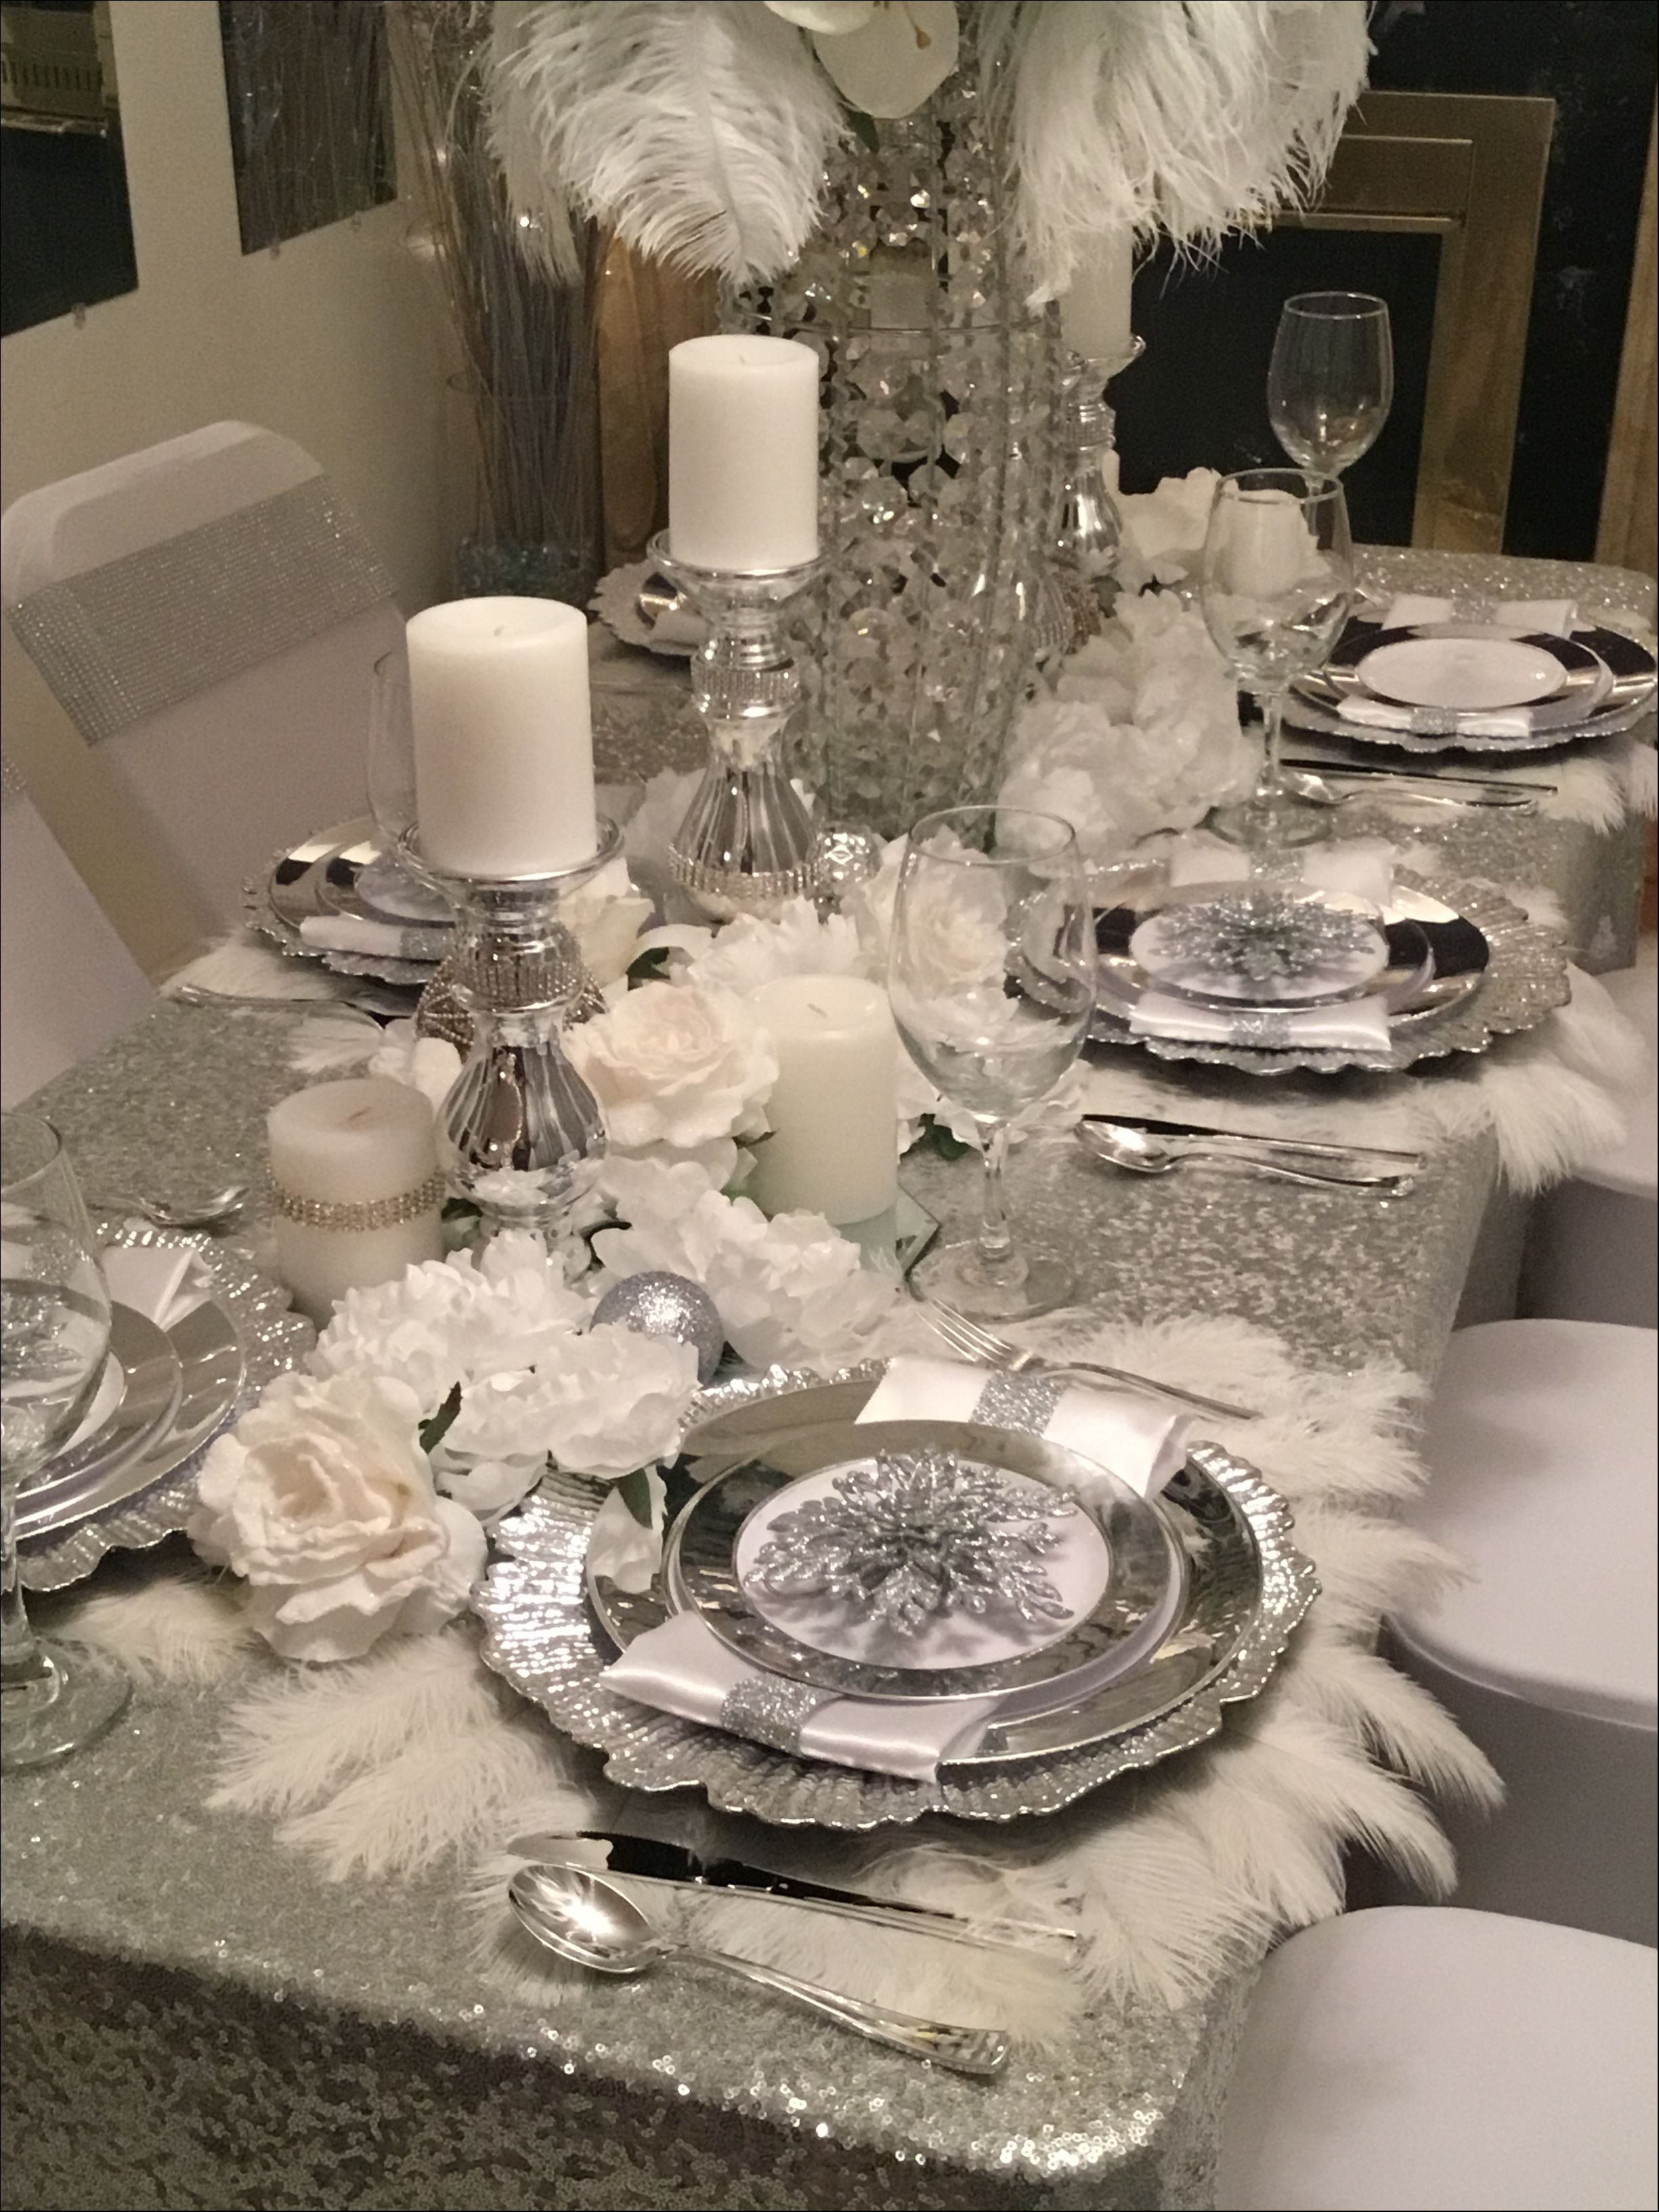 Silver Wedding Decorations For Tables Backyard Silver Wedding Decorations For Table Christmas Dining Room Table Dining Room Table Decor Christmas Dining Room